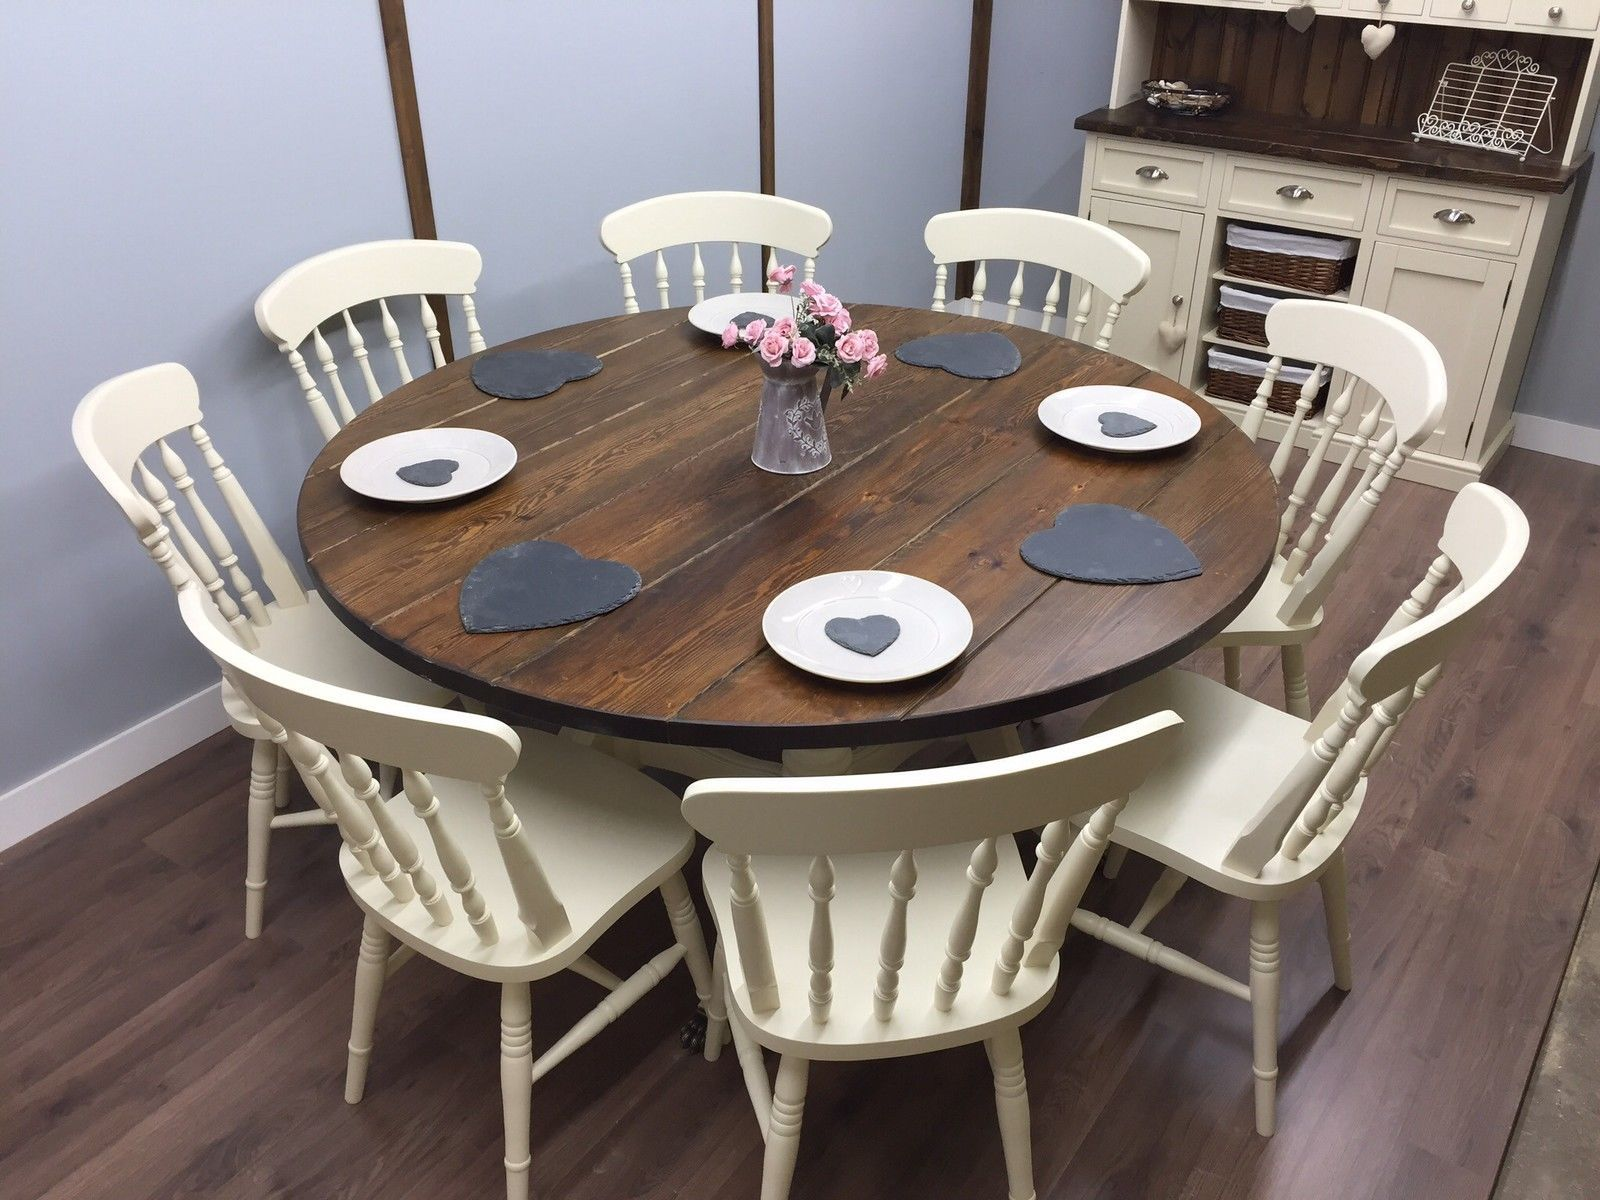 Large Round Farmhouse Table and Chairs 6,8 Seater Shabby Chic DELIVERY  AVAILABLE | eBay